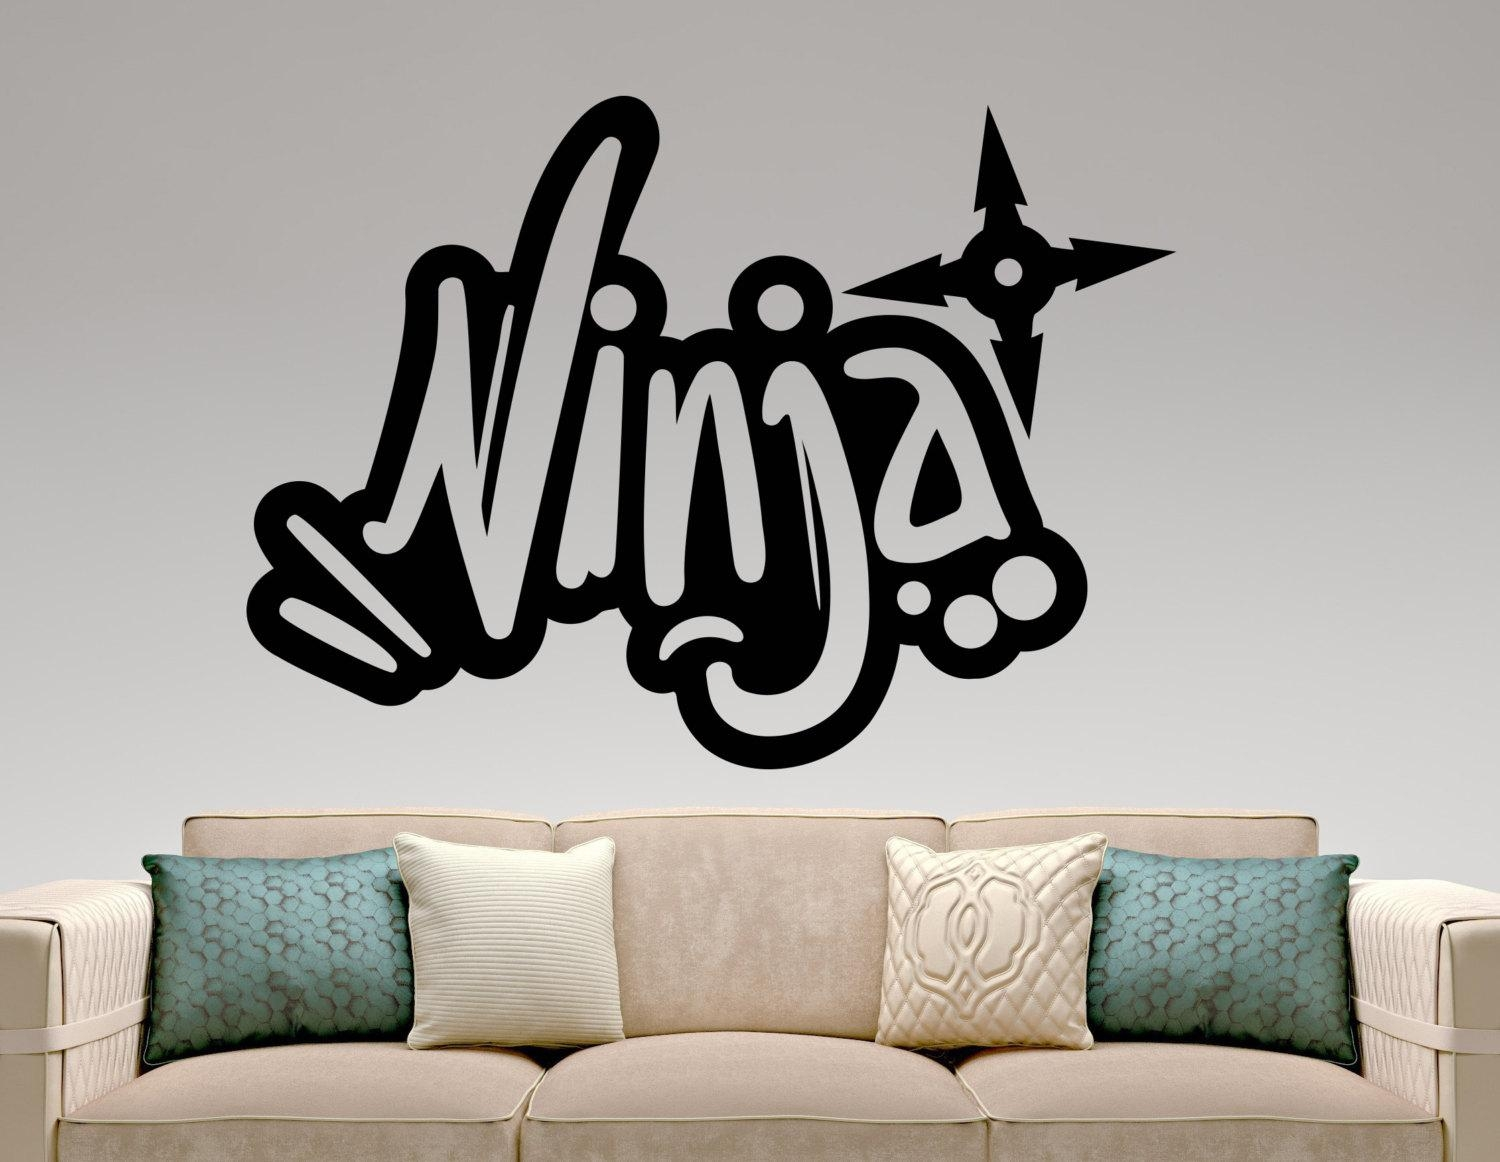 Ninja Graffiti Wall Decal Vinyl Sticker Home Interior Design throughout Graffiti Wall Art Stickers